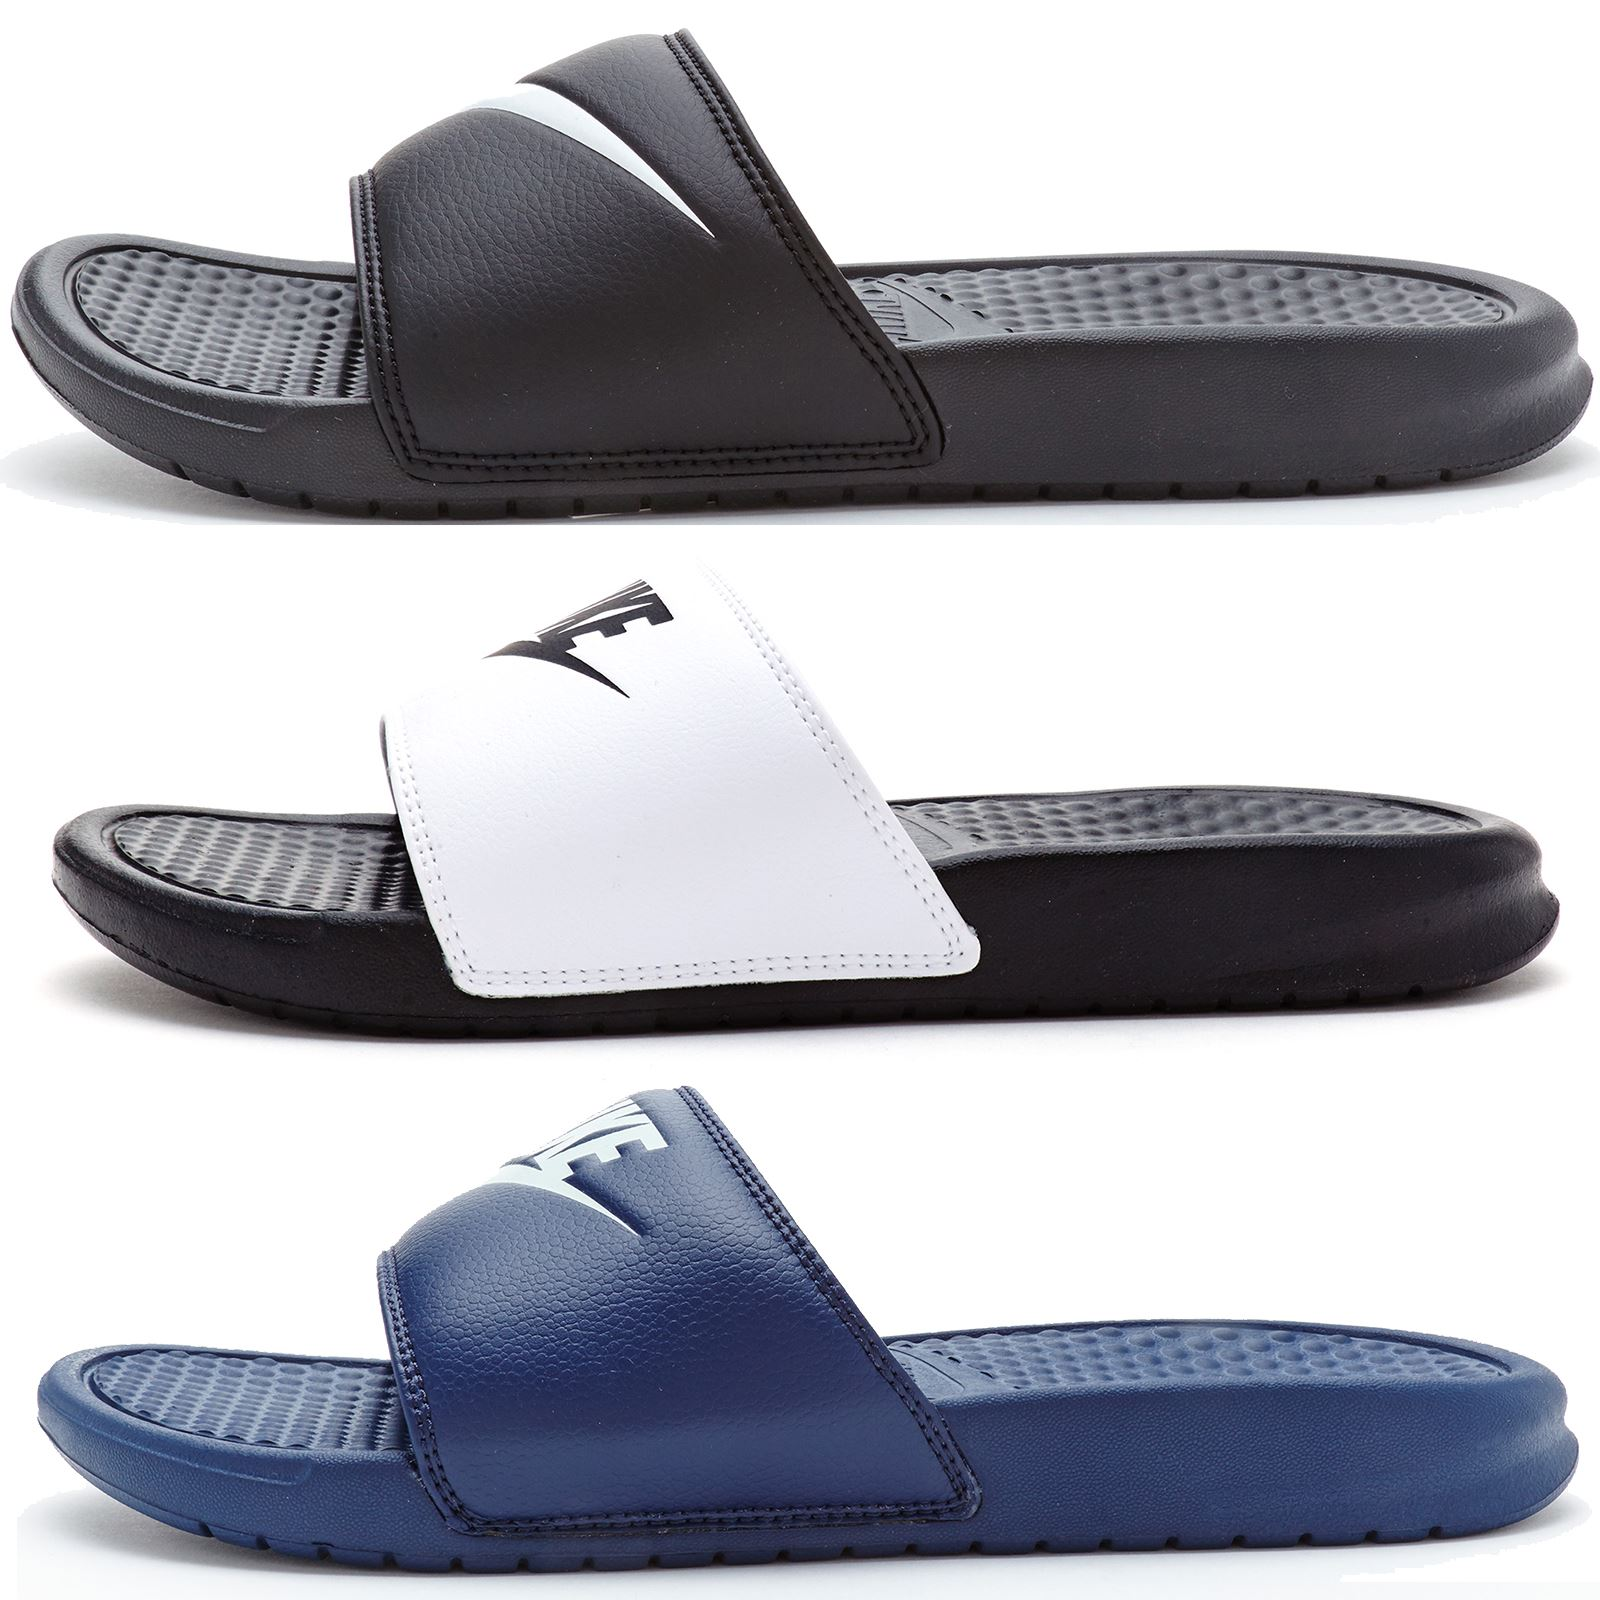 new styles a42e6 44128 Details about Nike Benassi Swoosh  Just Do IT Slide Flip Flop Pool Beach  Sandals in All Sizes